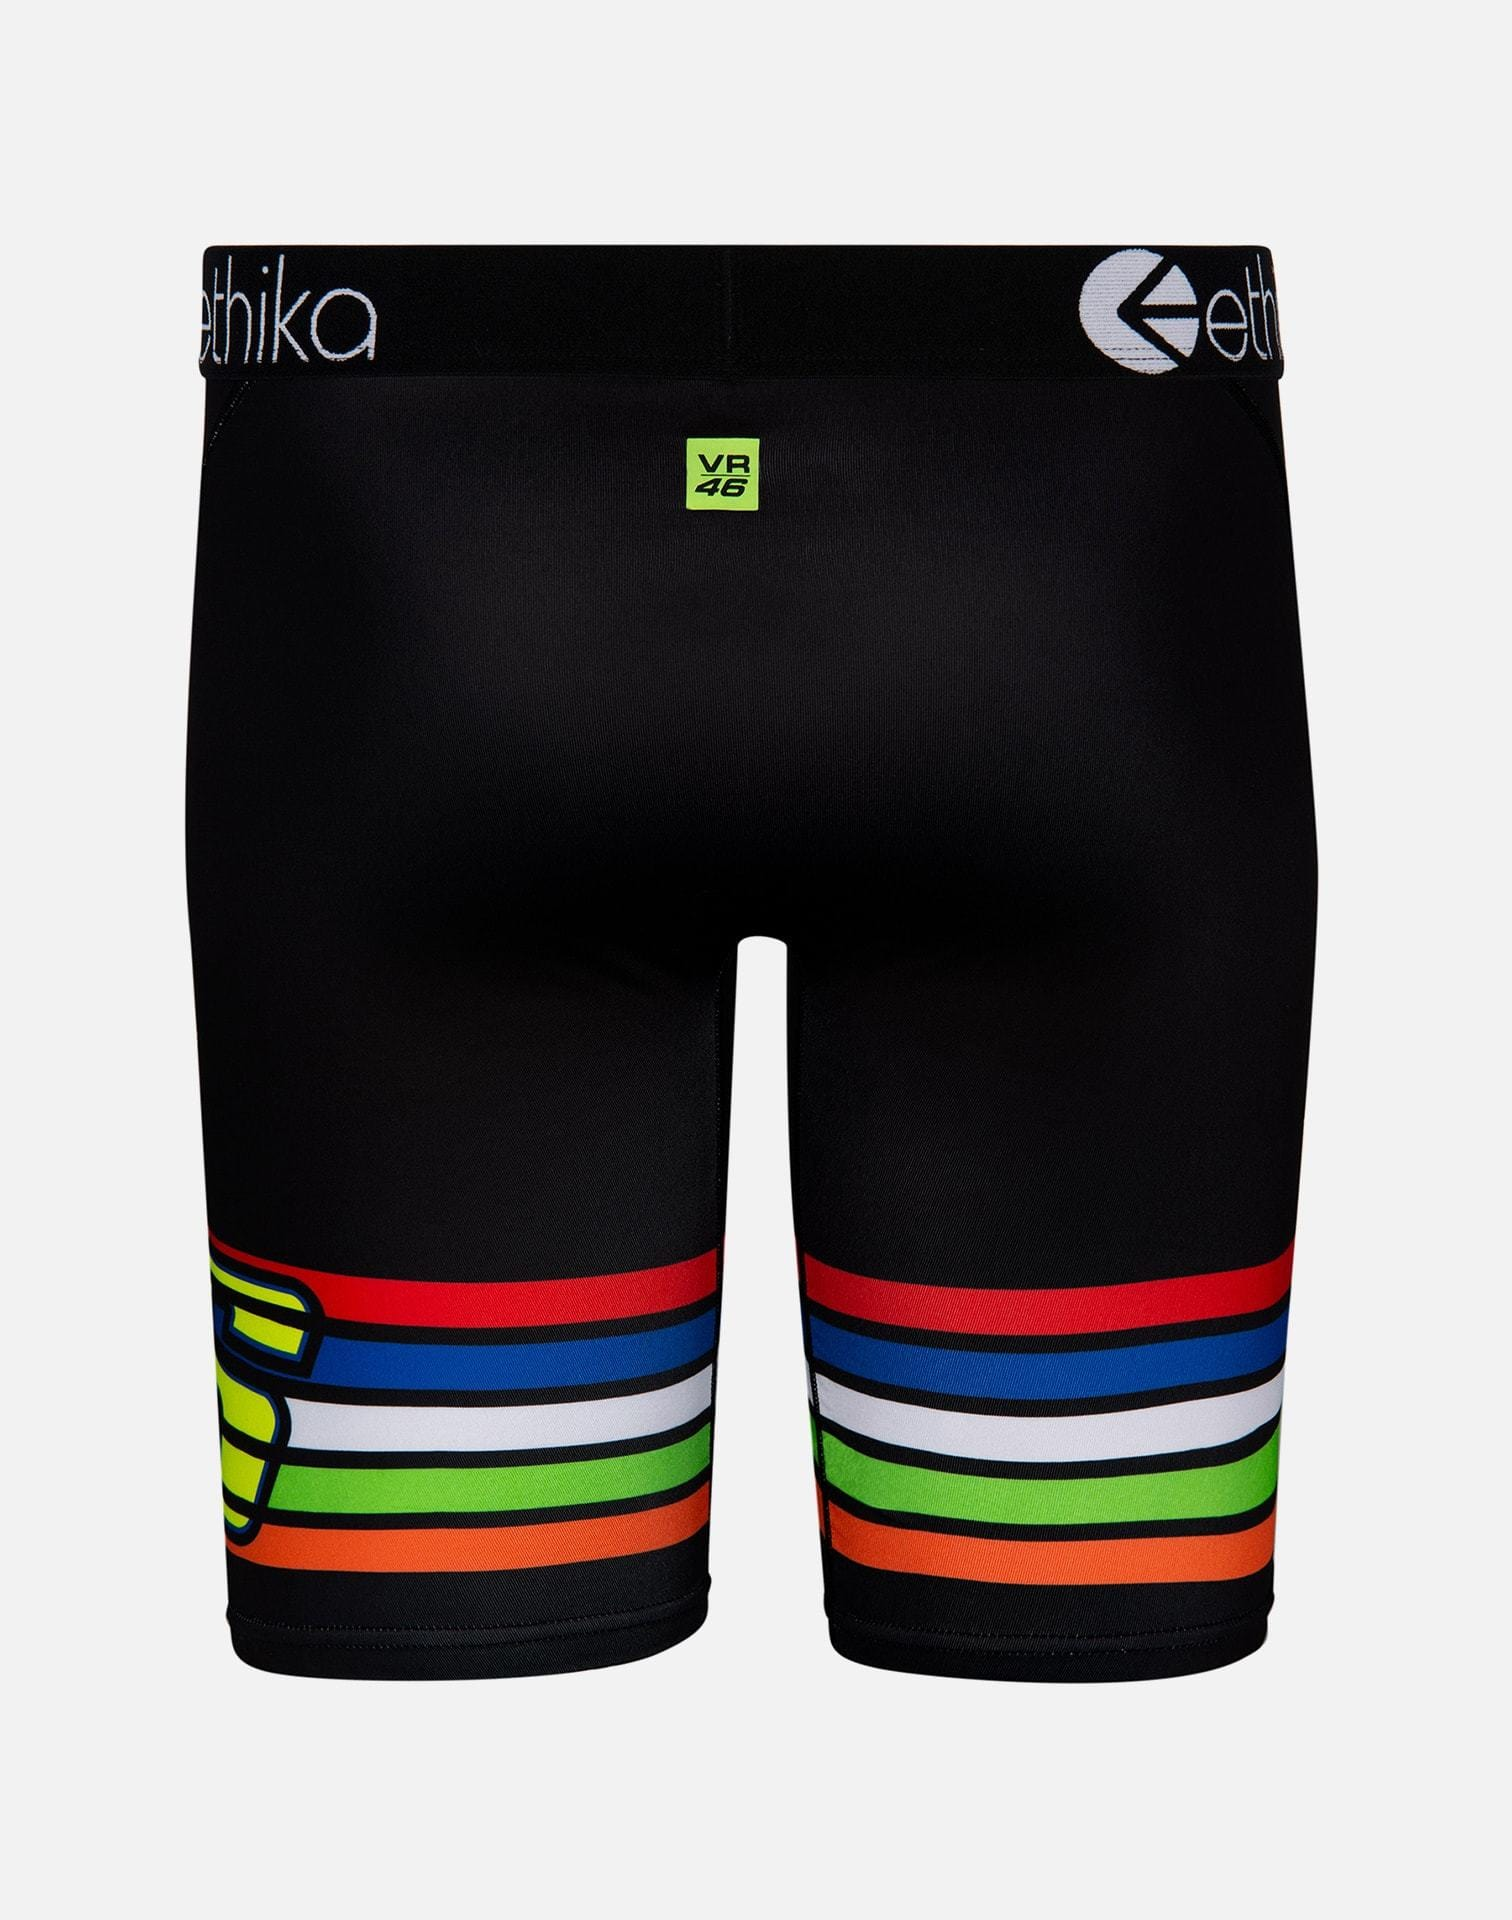 Ethika Men's Stripes Boxer Briefs